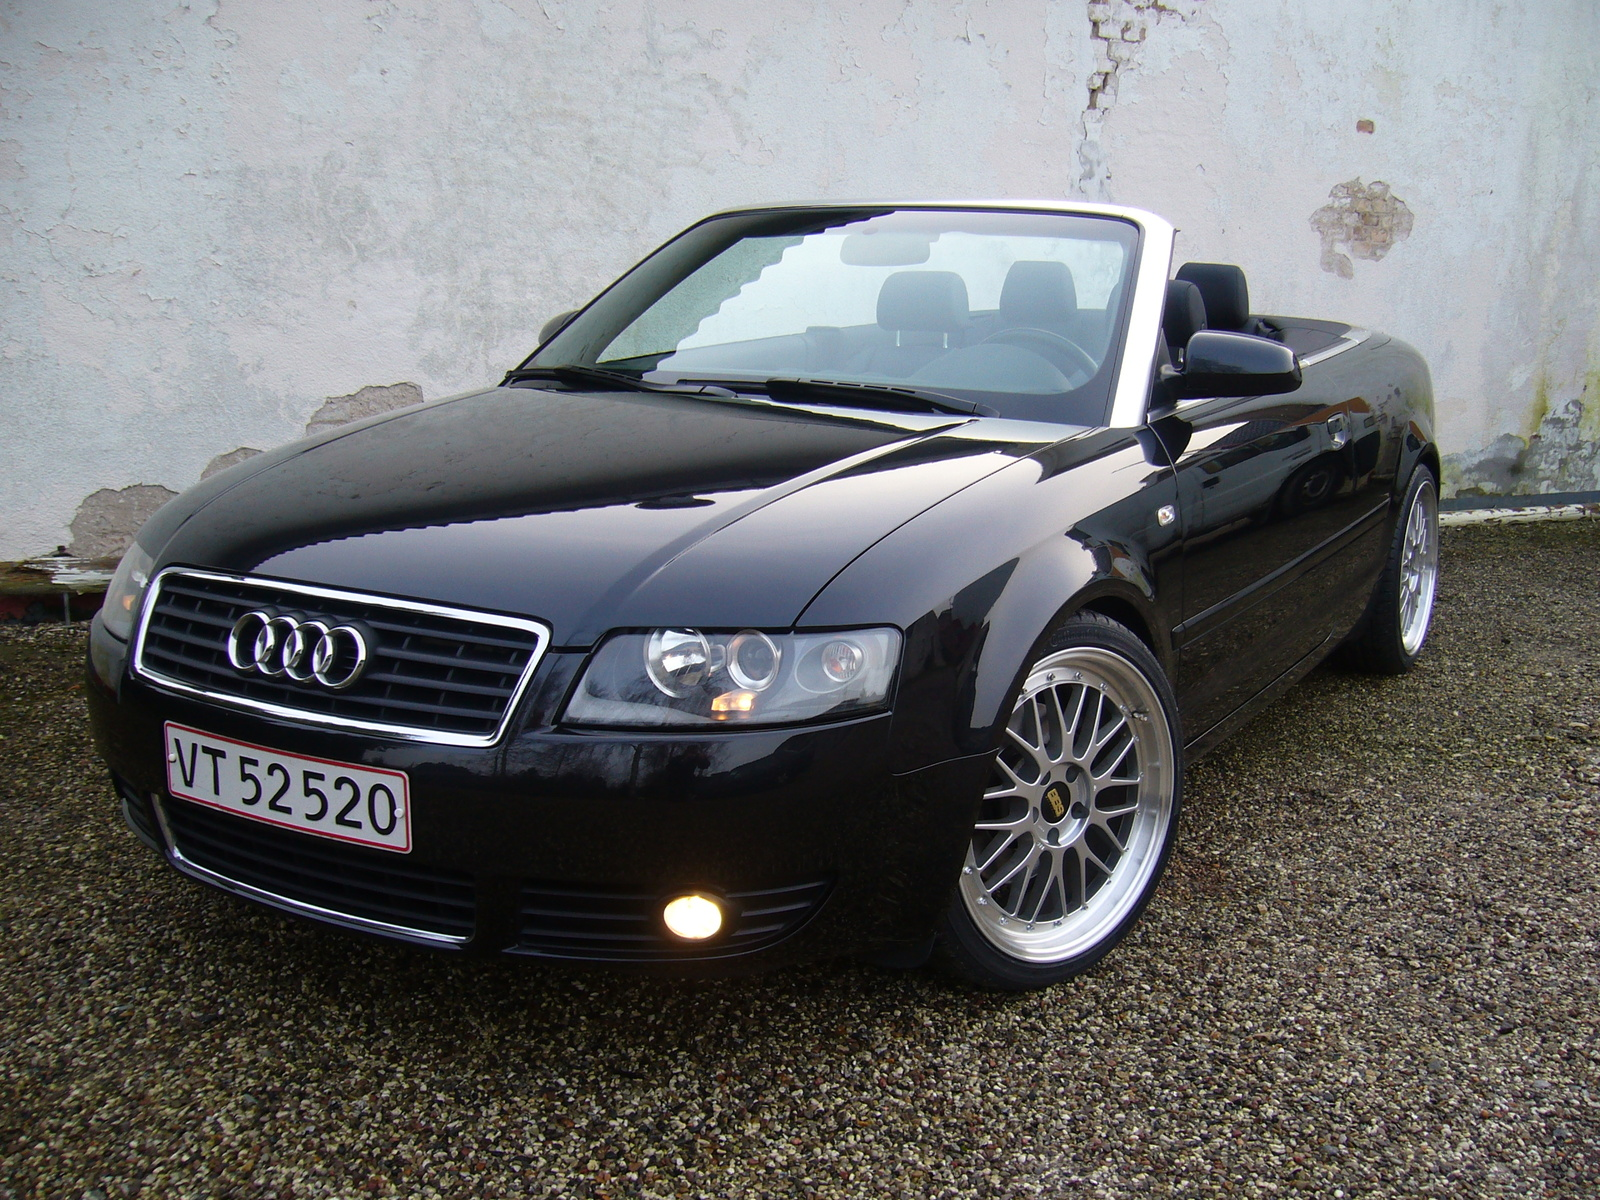 Home / Research / Audi / A4 / 2004